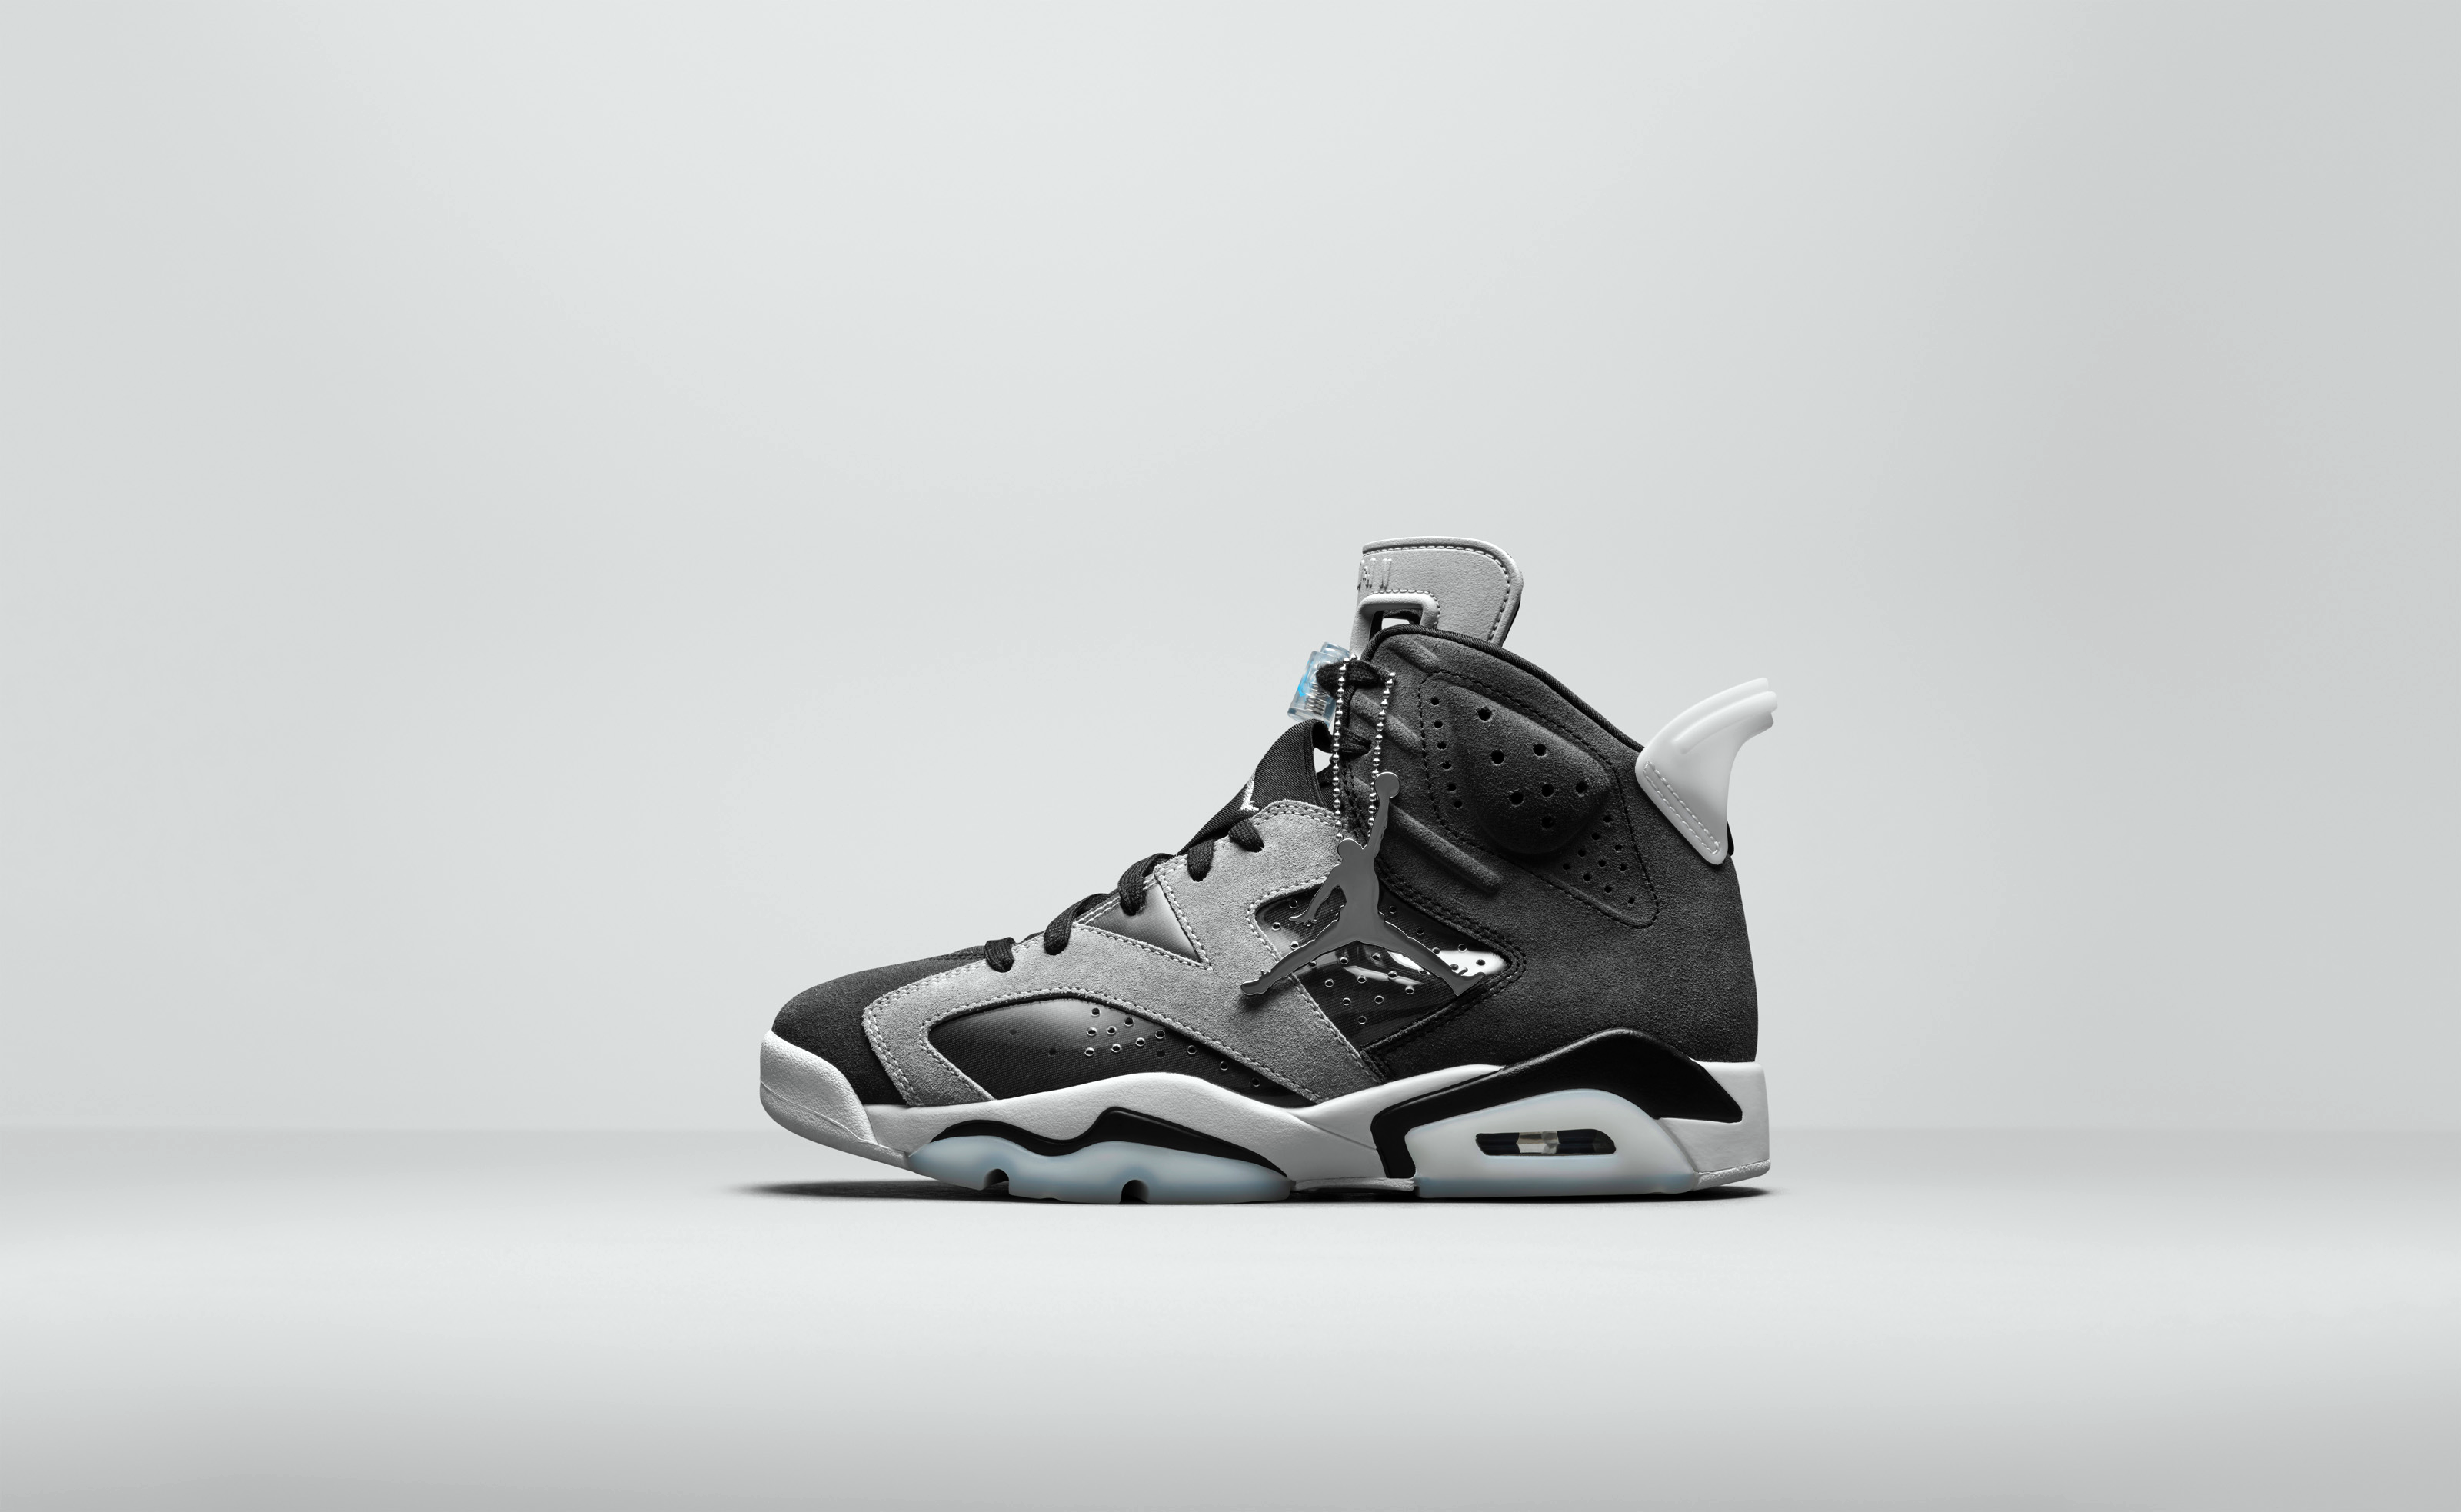 Air Jordan 6 Women's - Jordan Brand Fall 2020